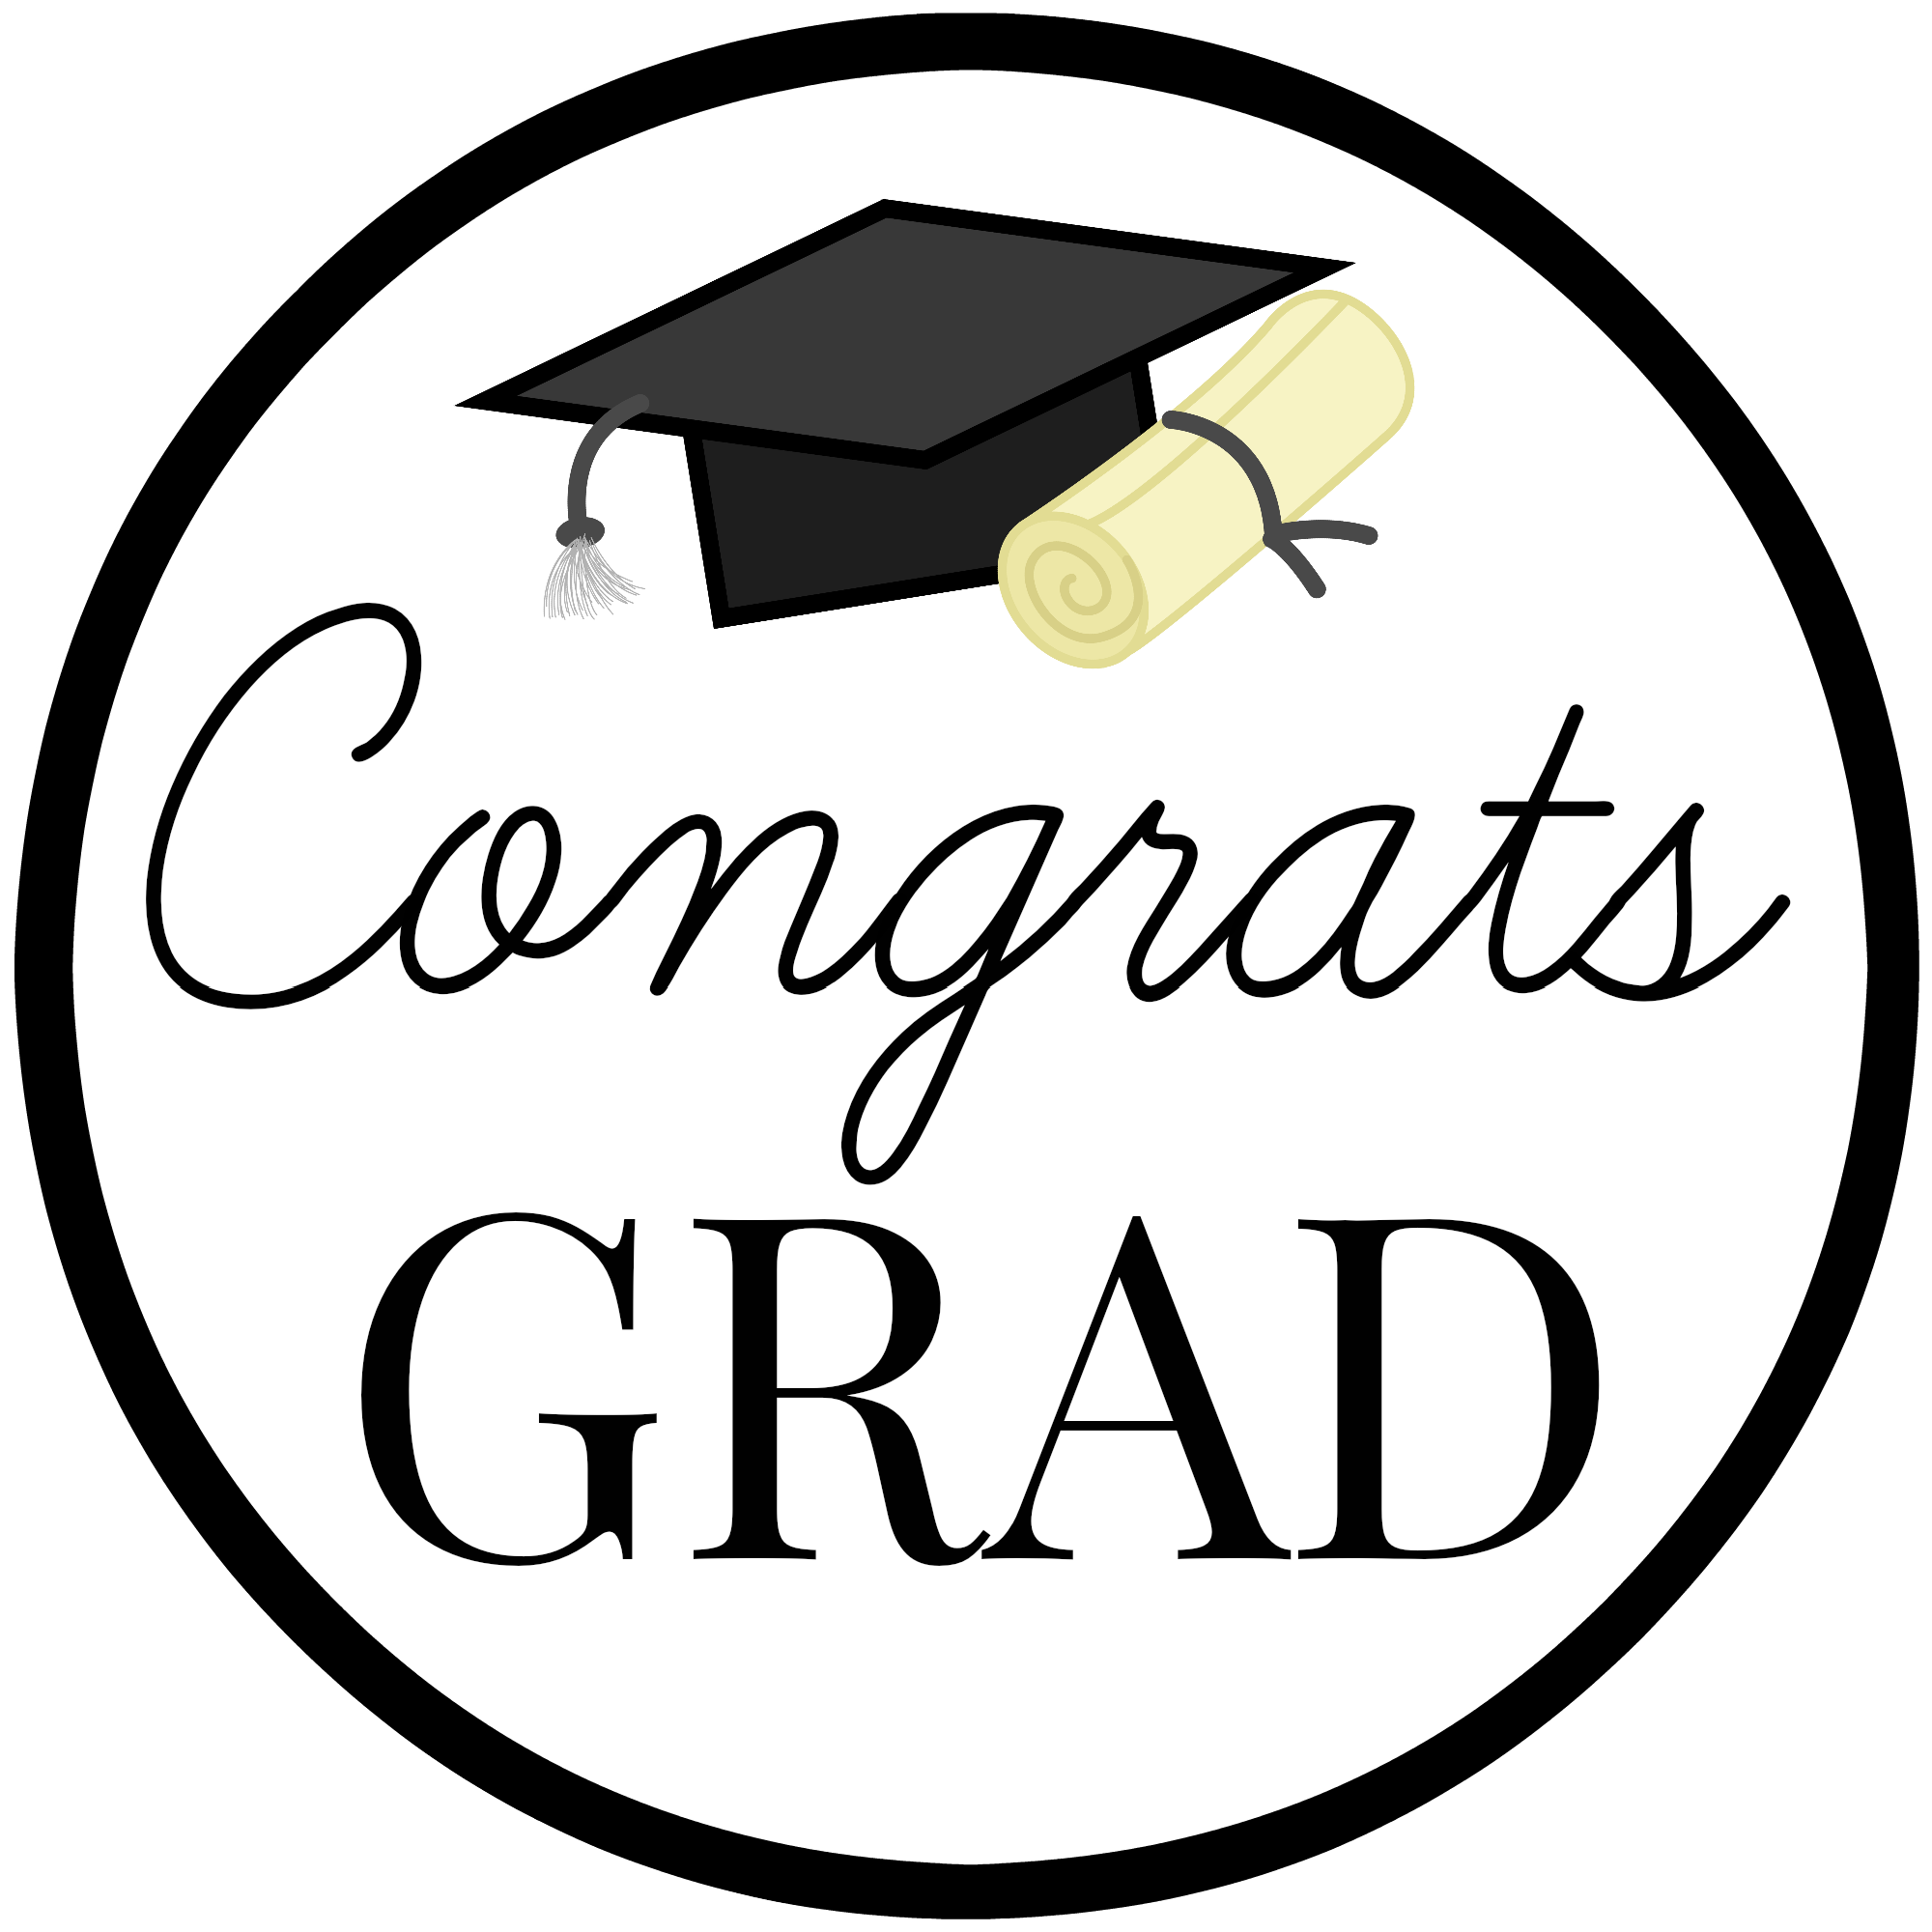 vector royalty free download Congratulations celebrations archives ann. Certificate clipart congratulation.